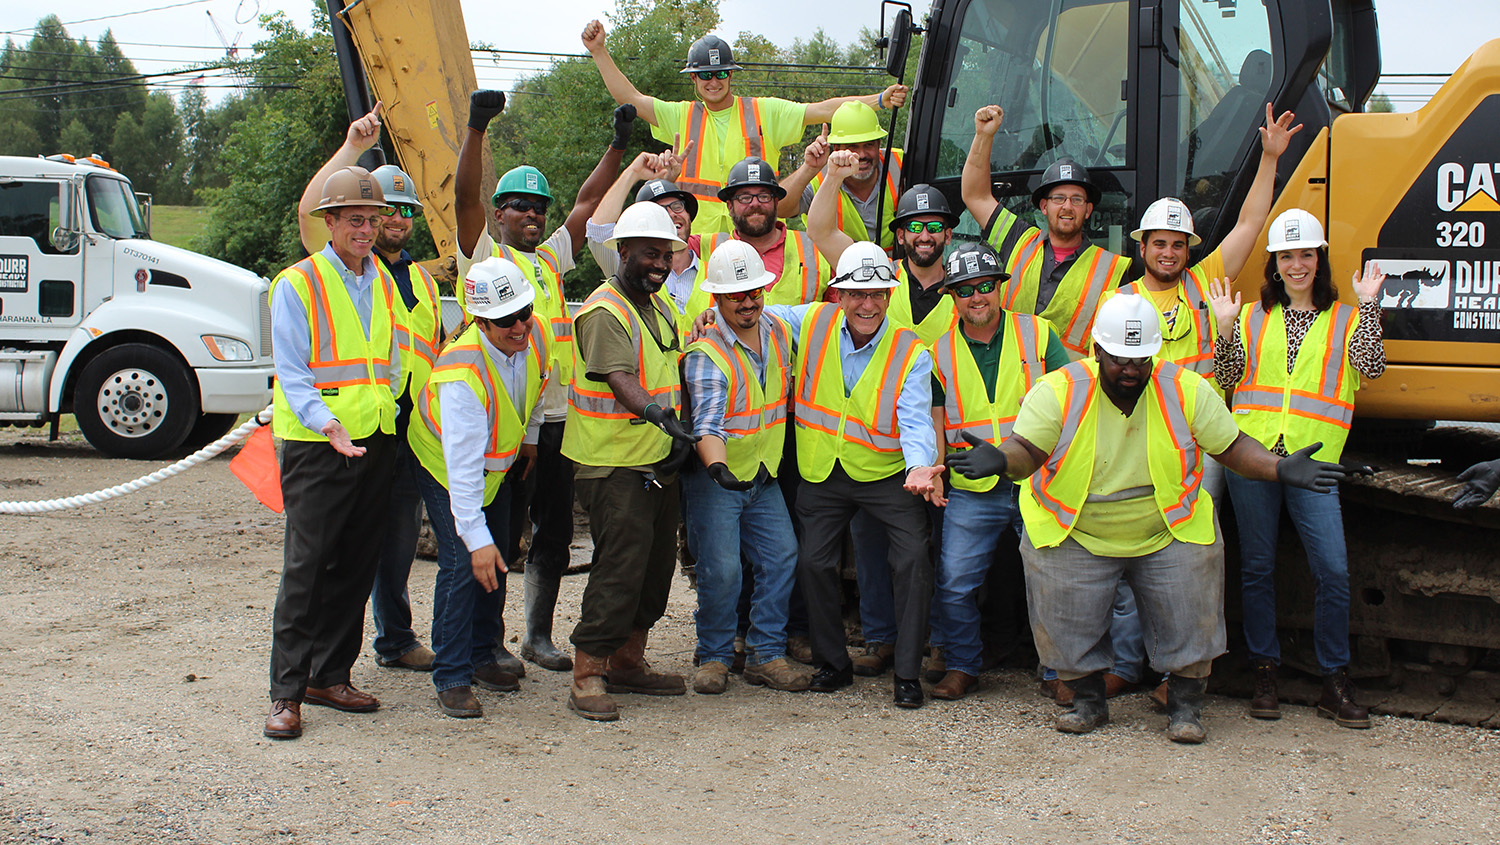 a group of durr employees pose for a photo